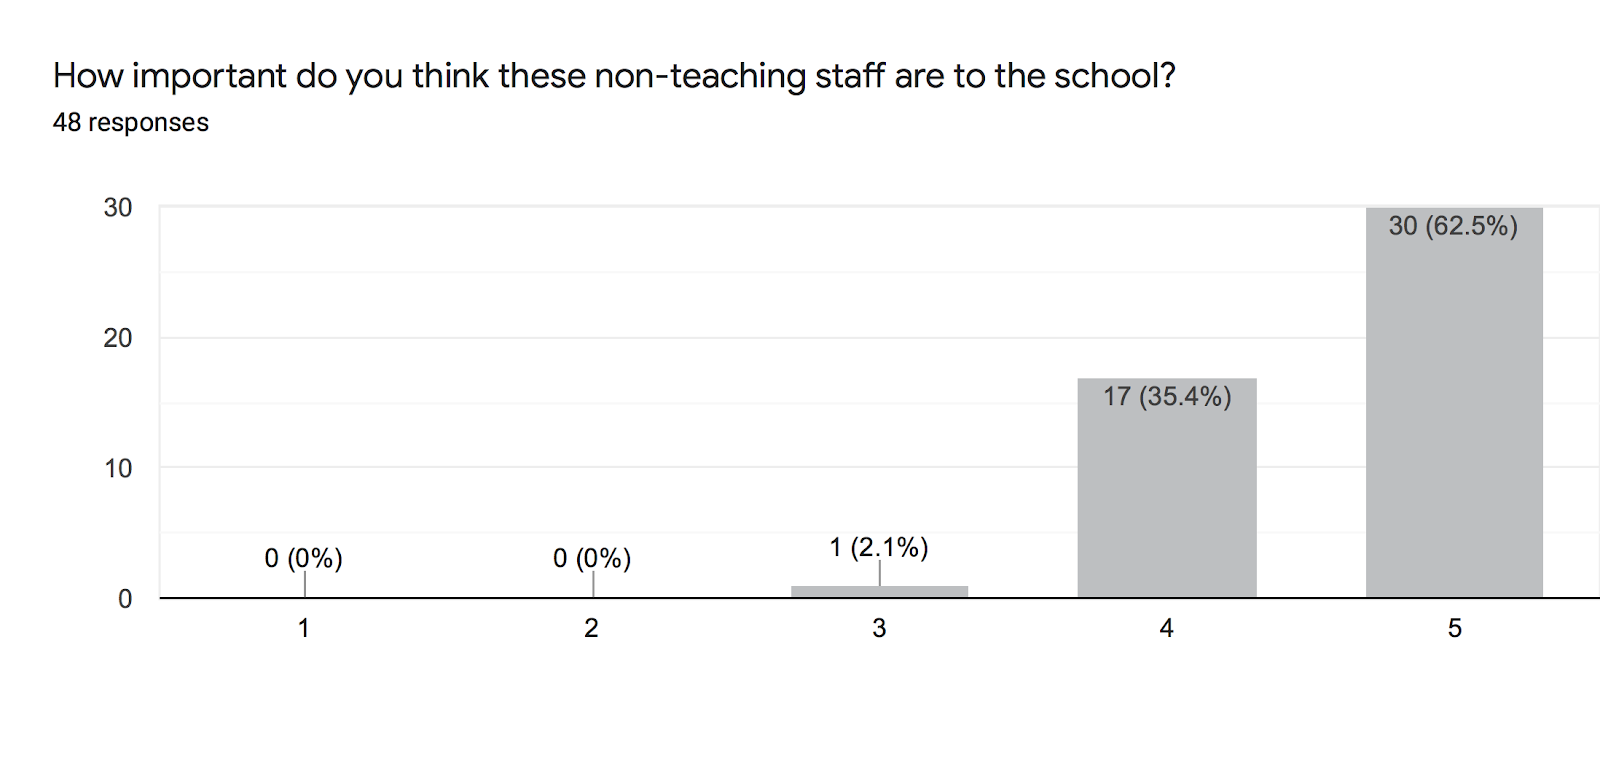 Forms response chart. Question title: How important do you think these non-teaching staff are to the school?. Number of responses: 48 responses.